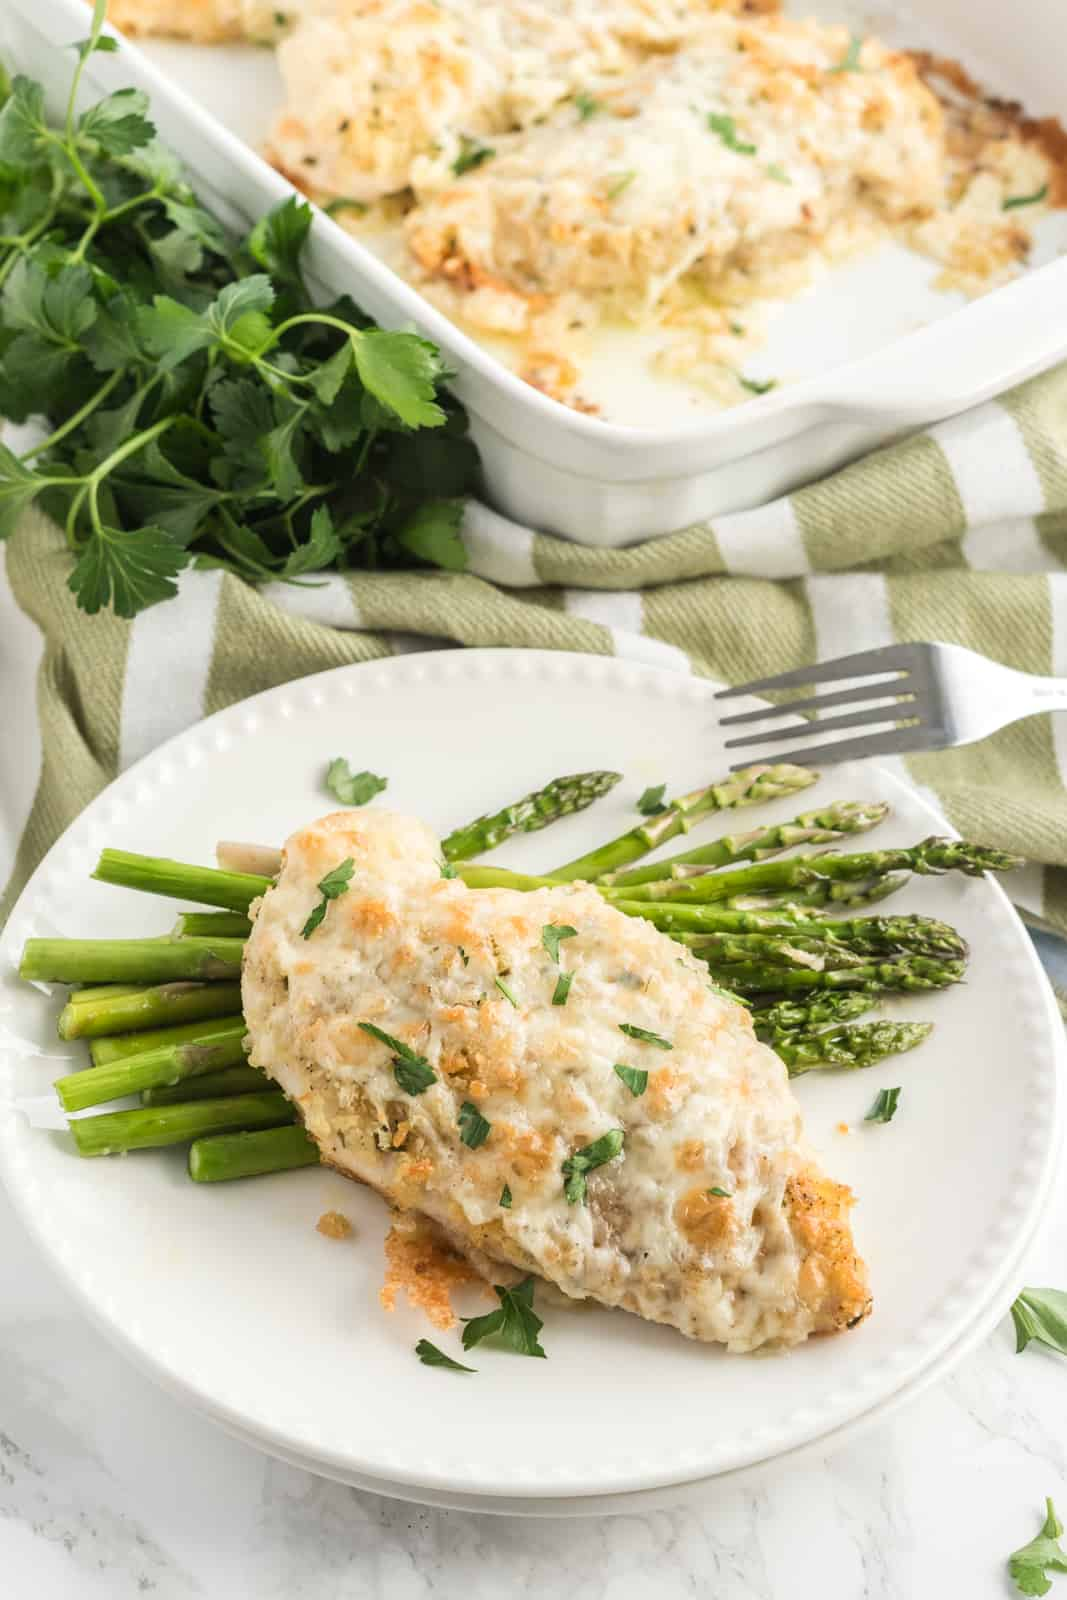 Chicken breast on plate with asparagus